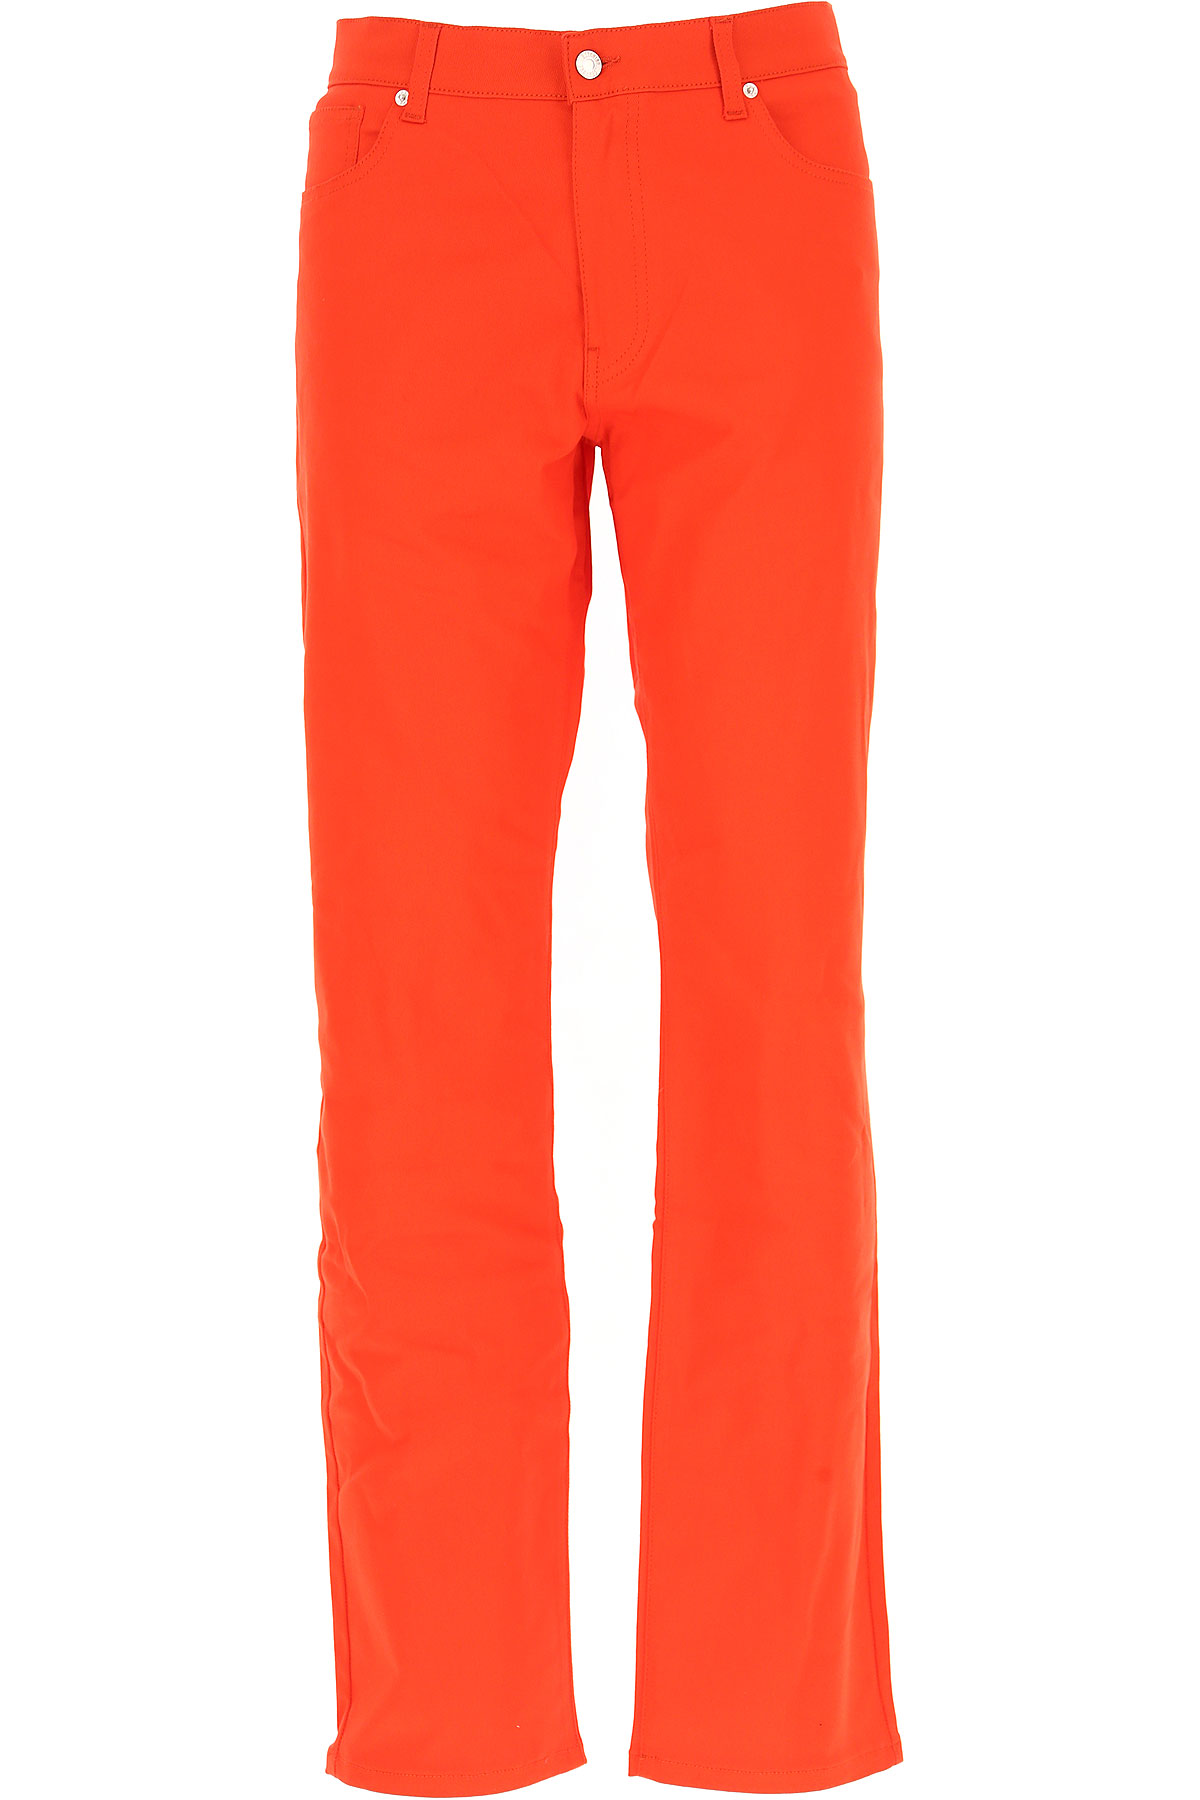 Moschino Jeans On Sale, Red, Cotton, 2017, 30 34 USA-447990